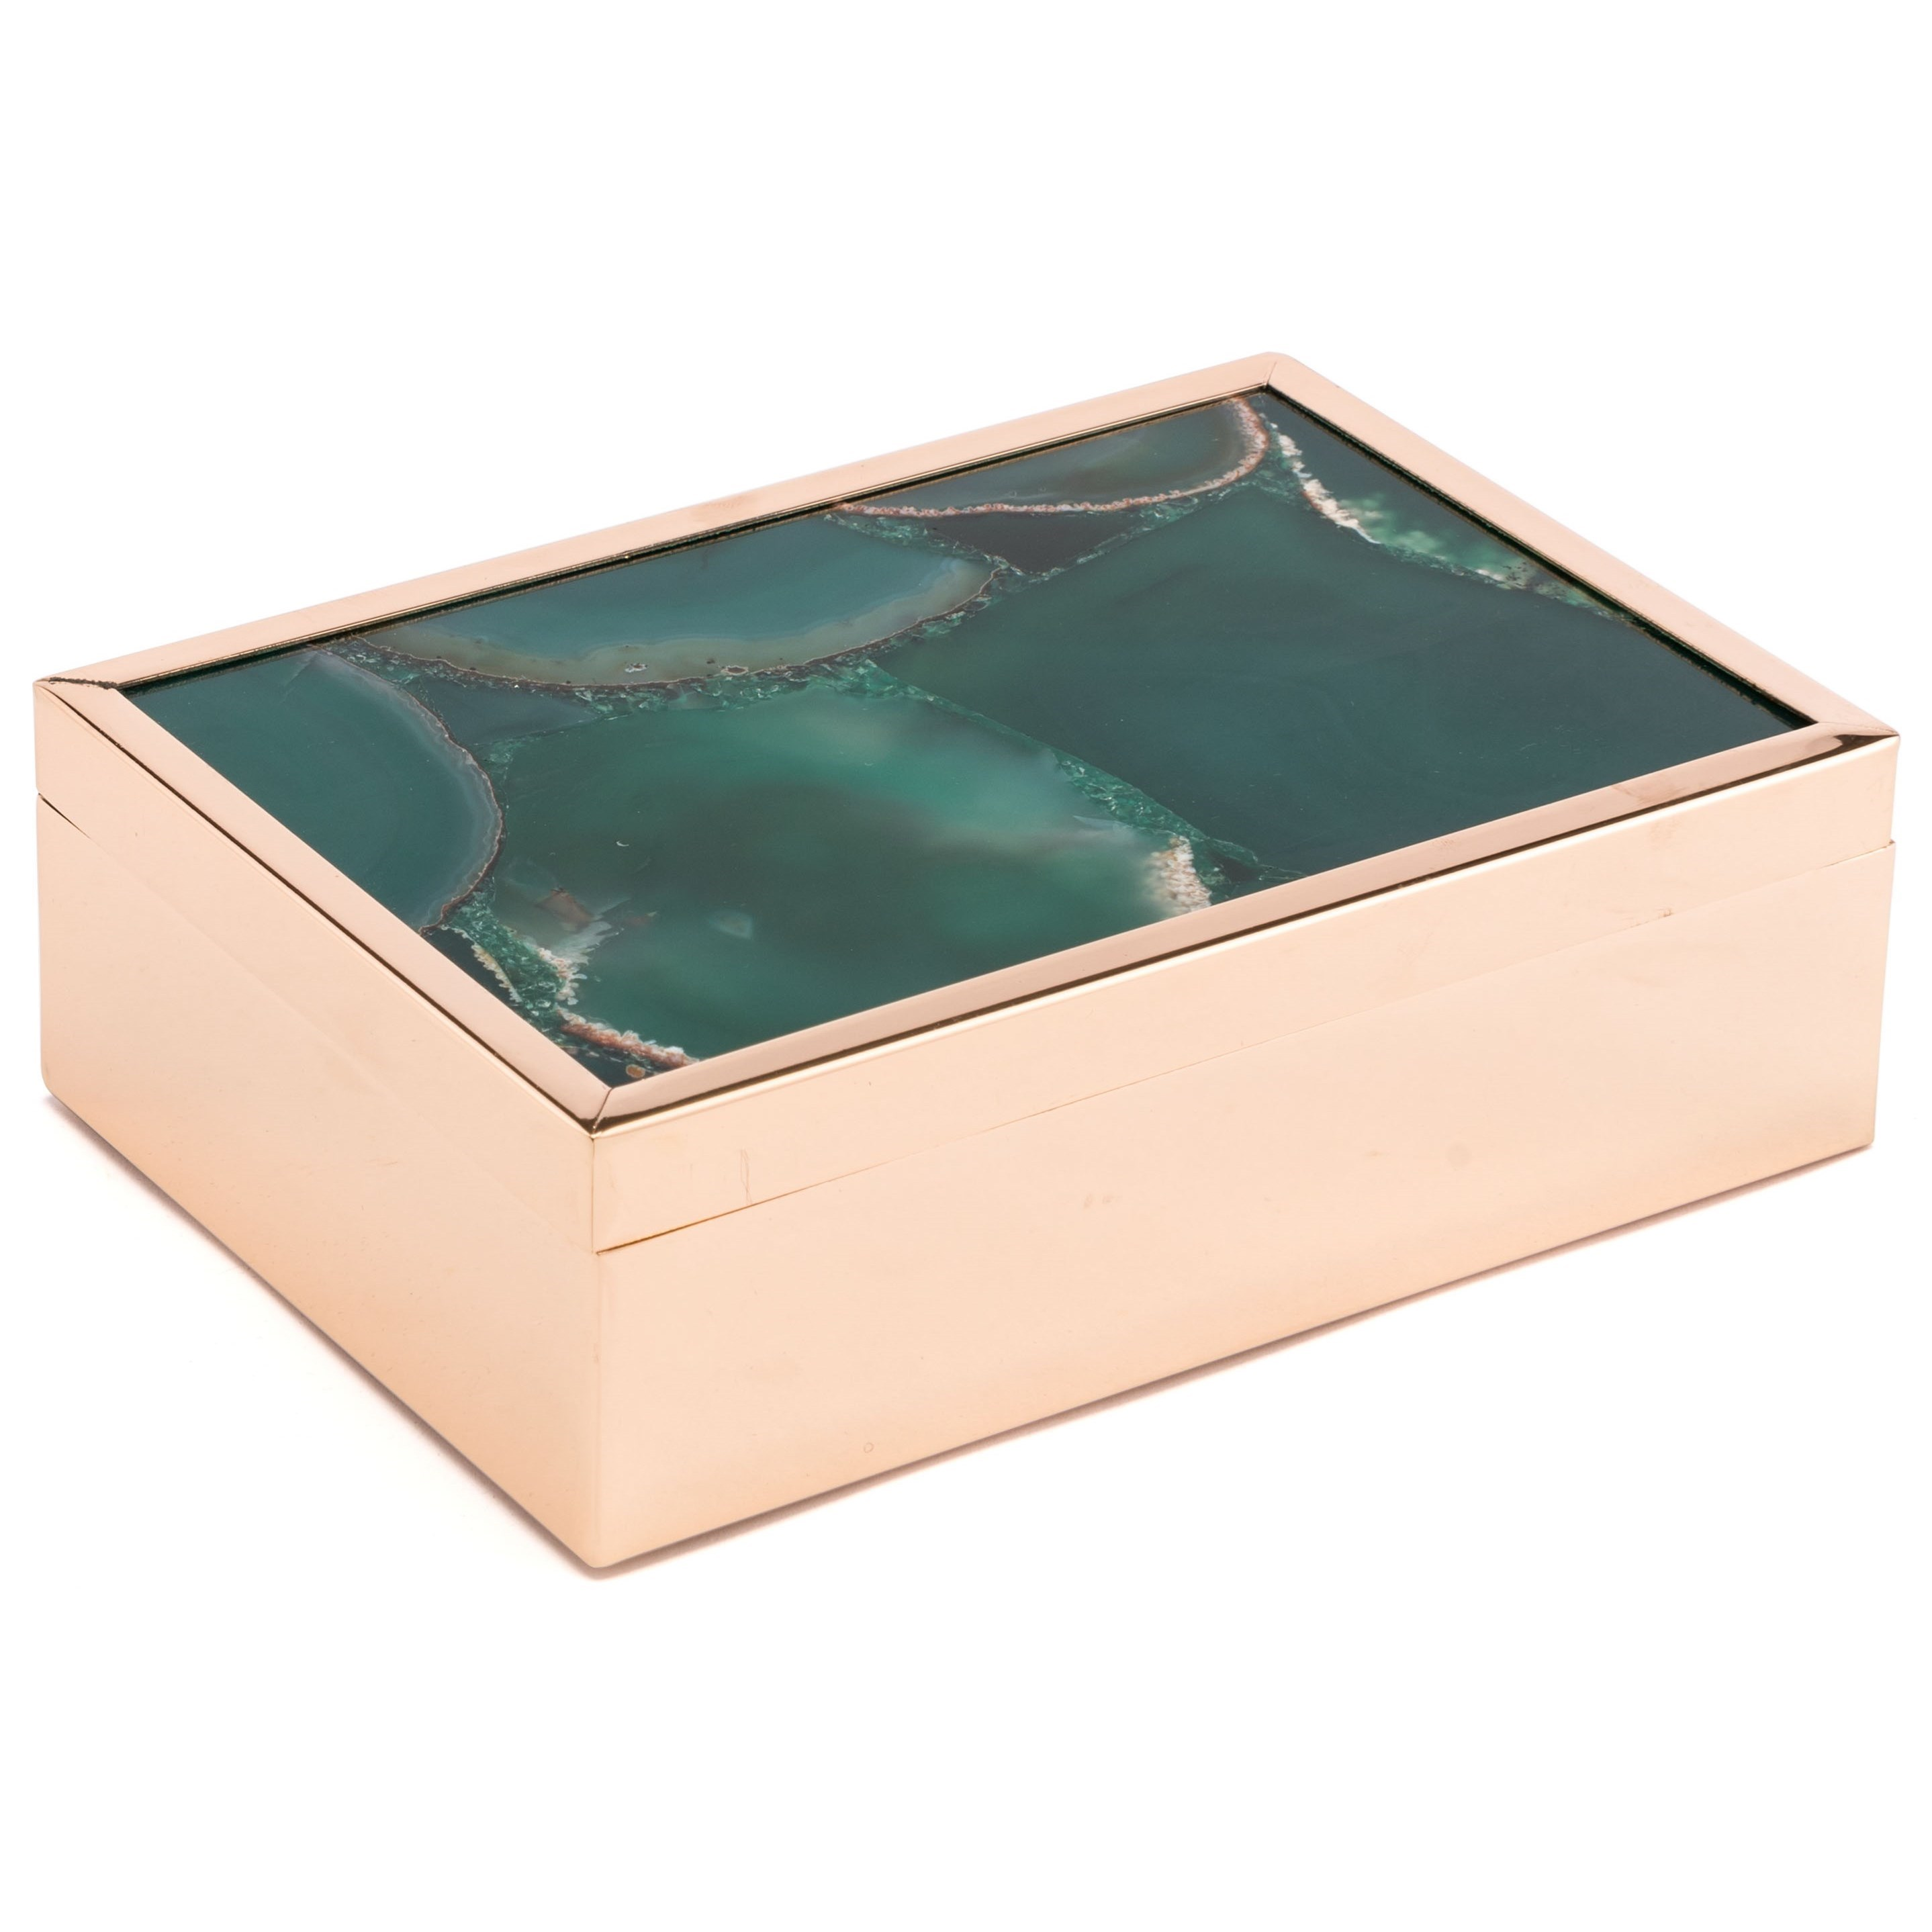 Zuo Boxes, Bowls and Trays Green Stone Box Large - Item Number: A10924